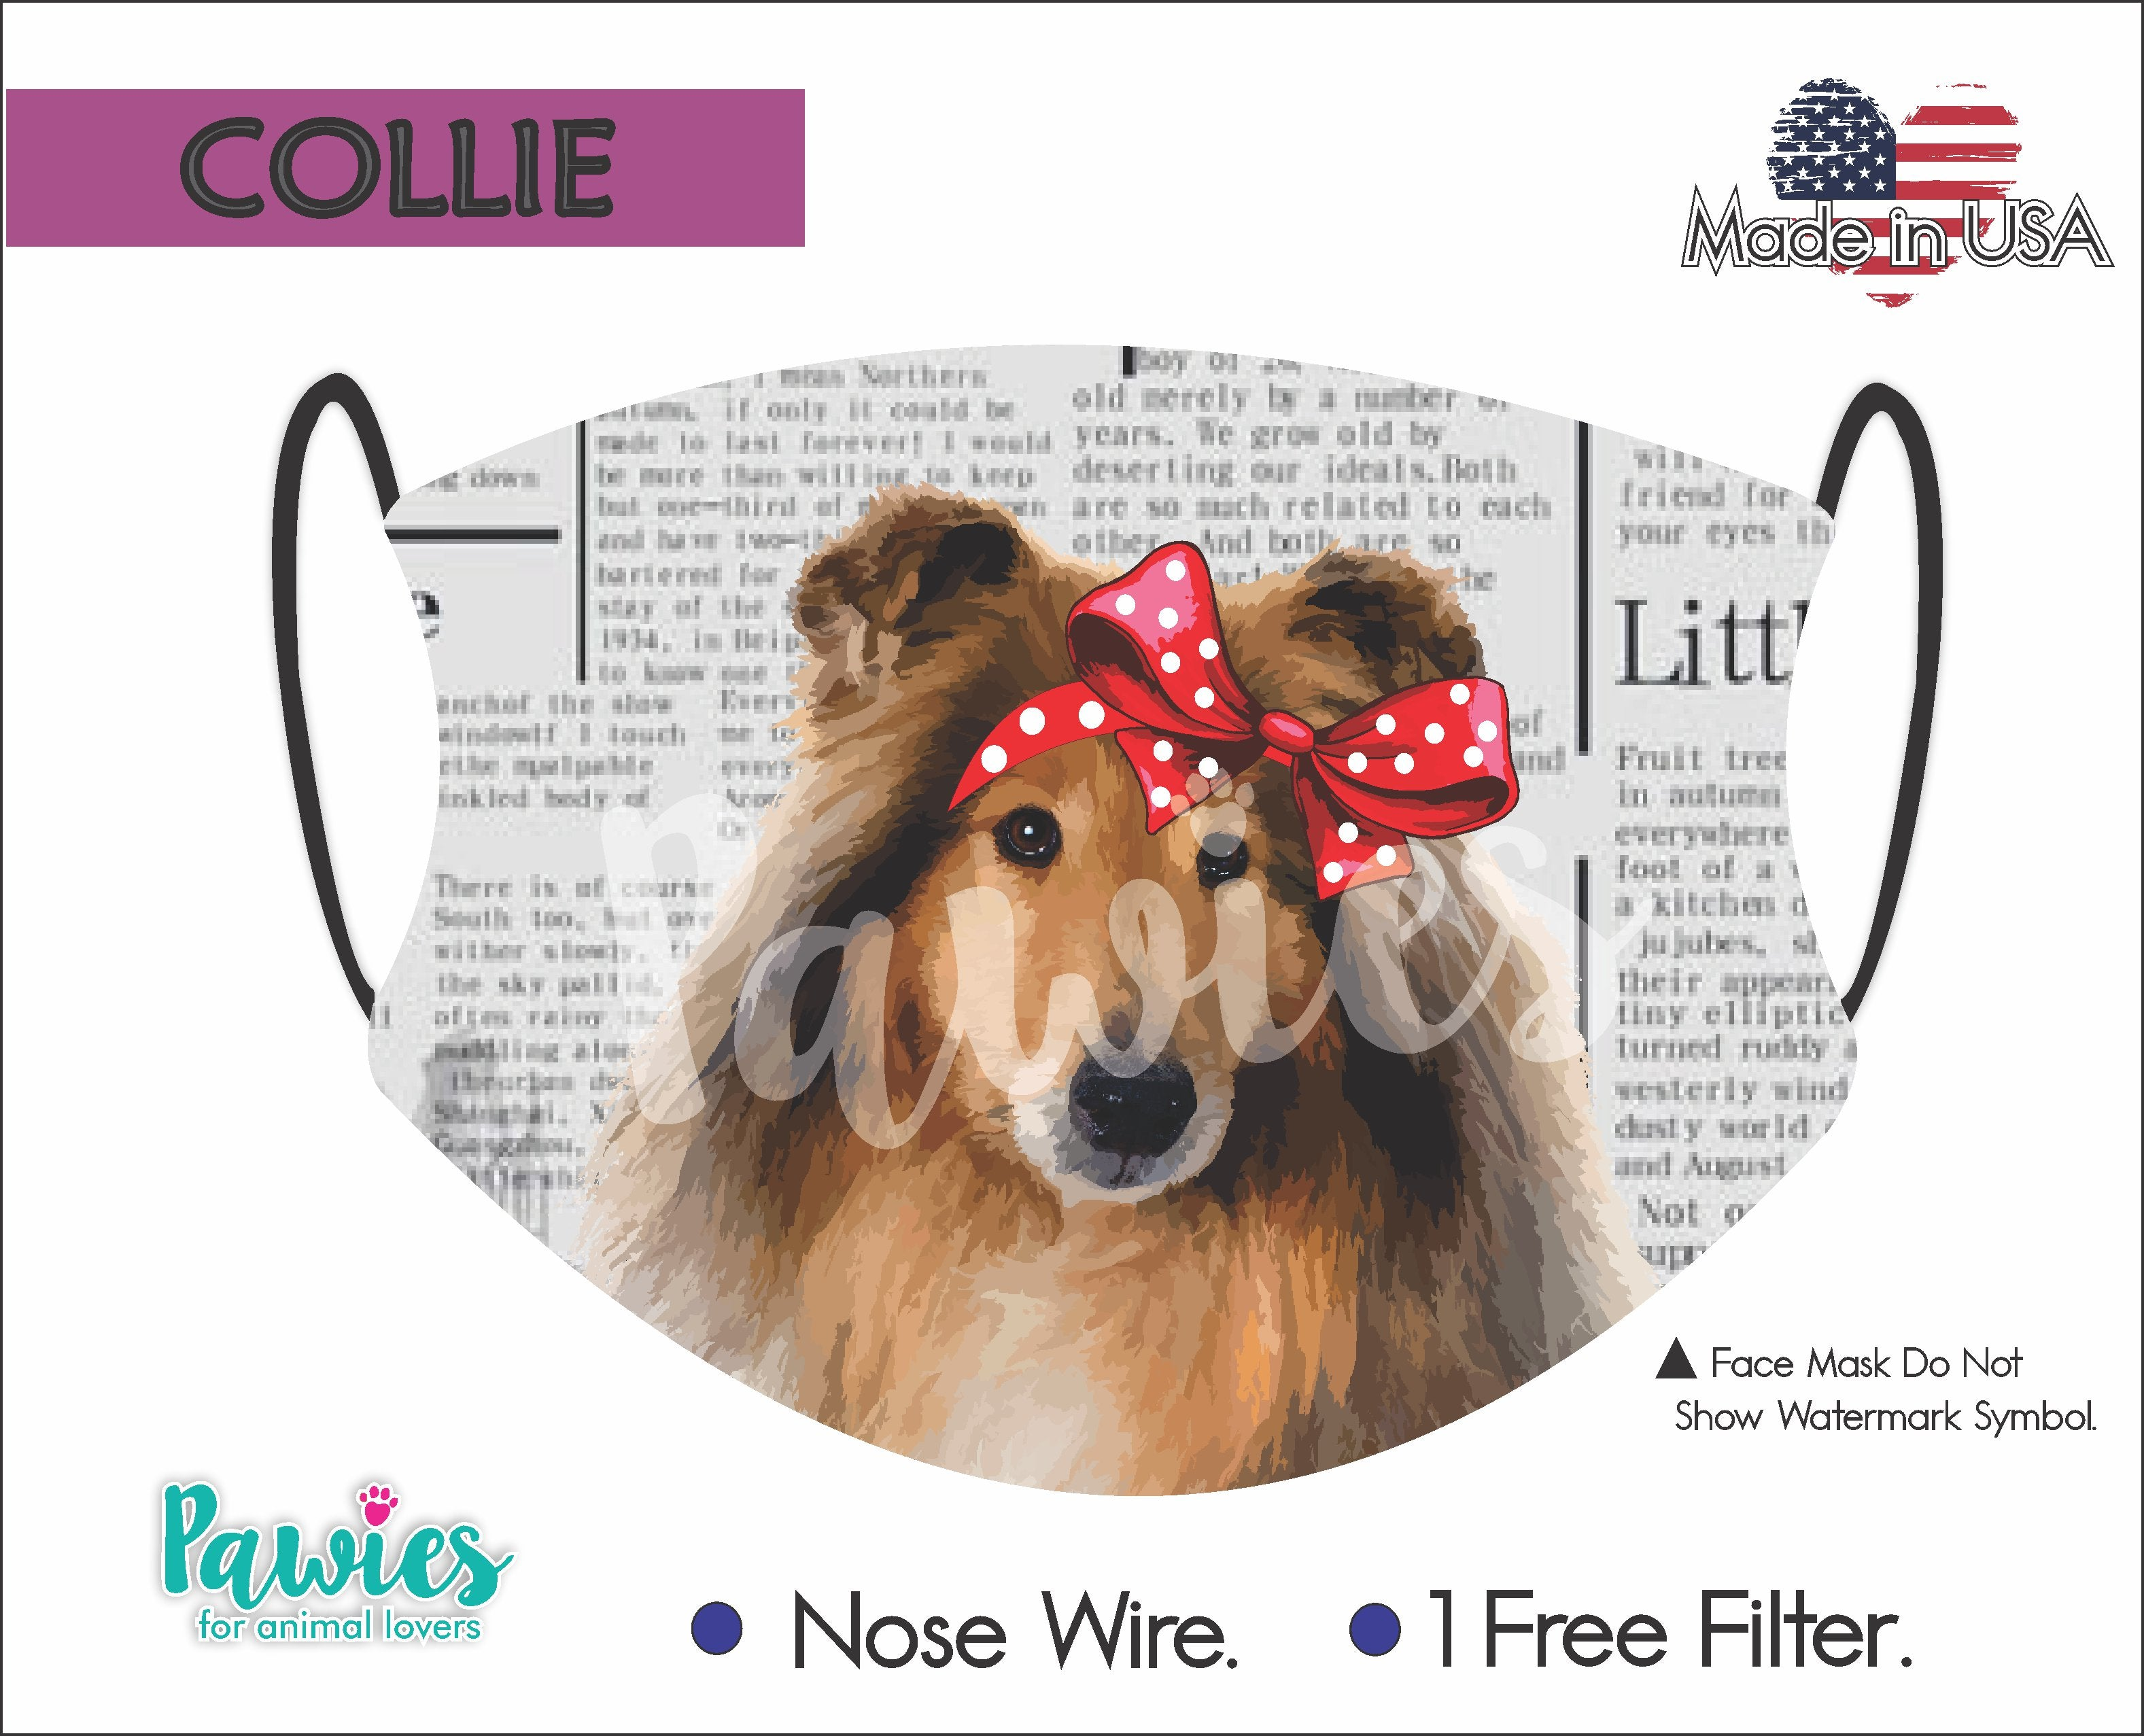 Collie Face Mask